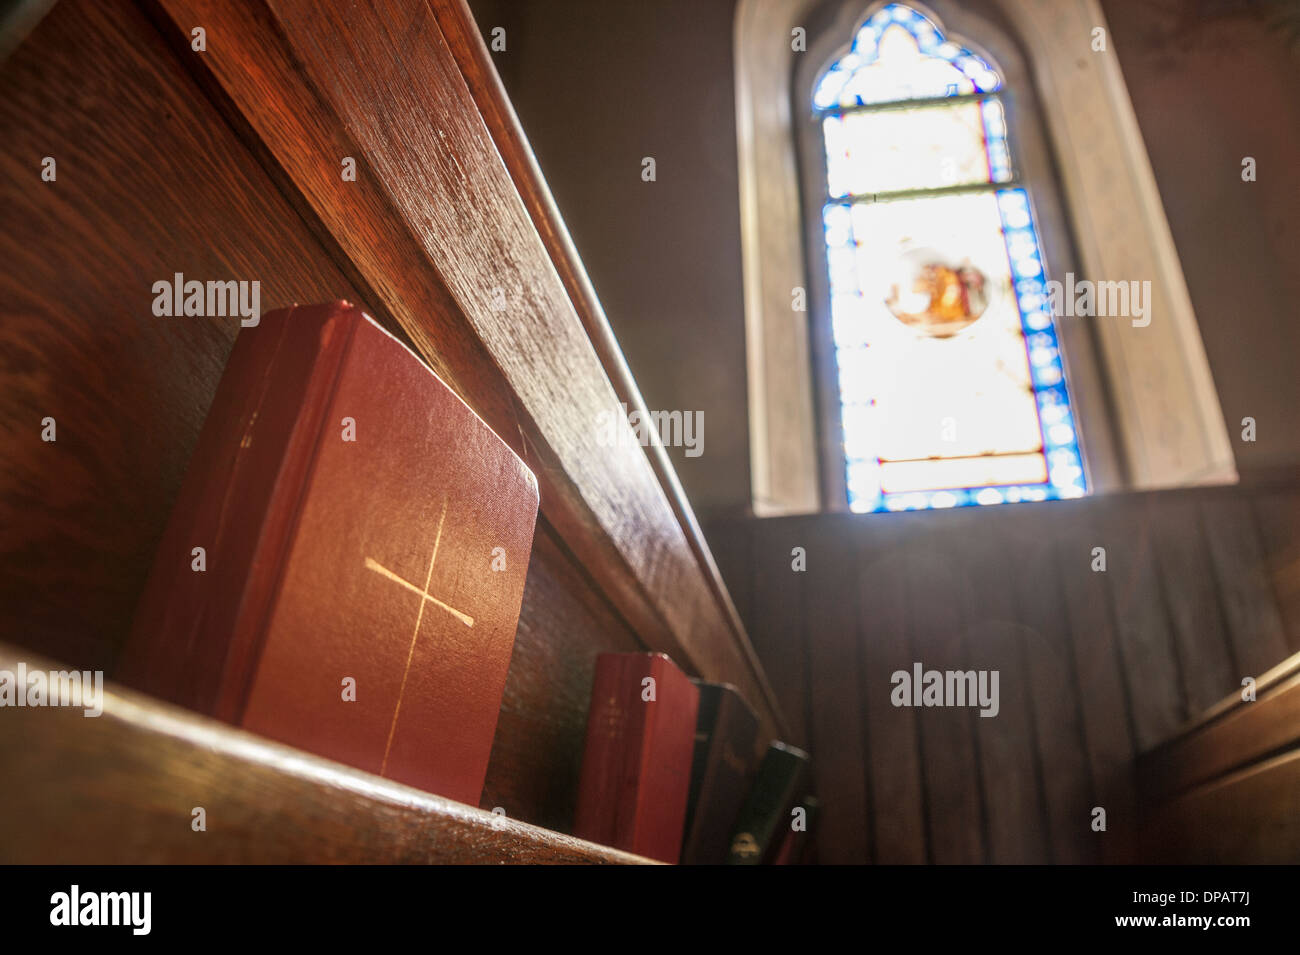 Church pew and stained glass window light - Stock Image